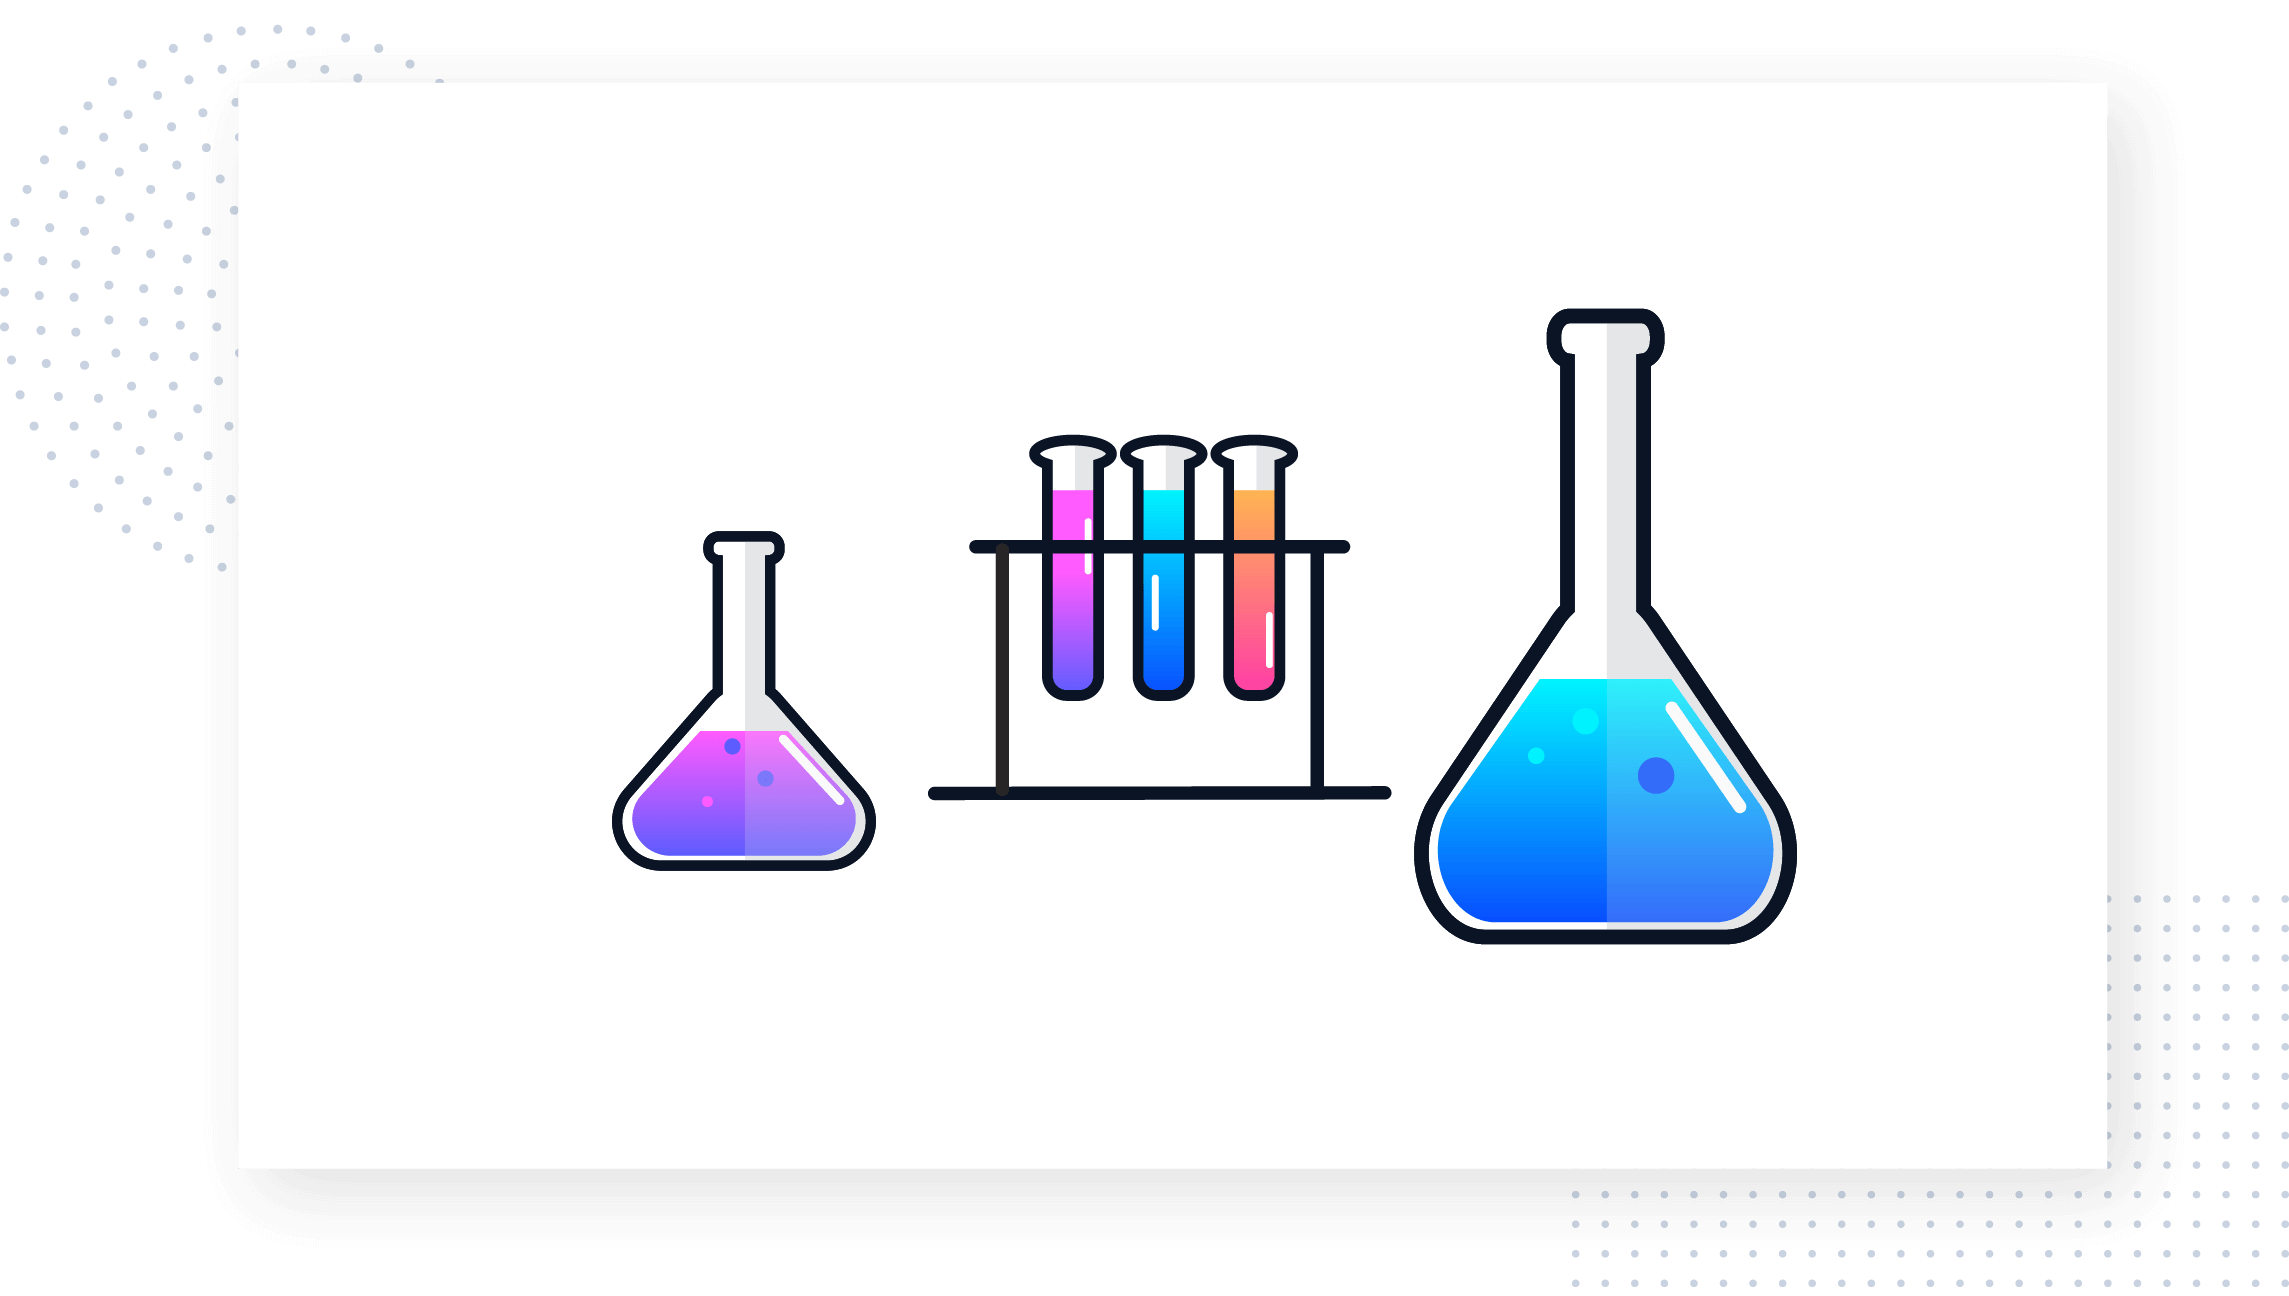 This is an image showing science laboratory tools, beakers, and test tubes in purple, blue, and orange gradients. This is a colorful graphic of scientific experiment equipment. From the Product-Led Growth Collective.